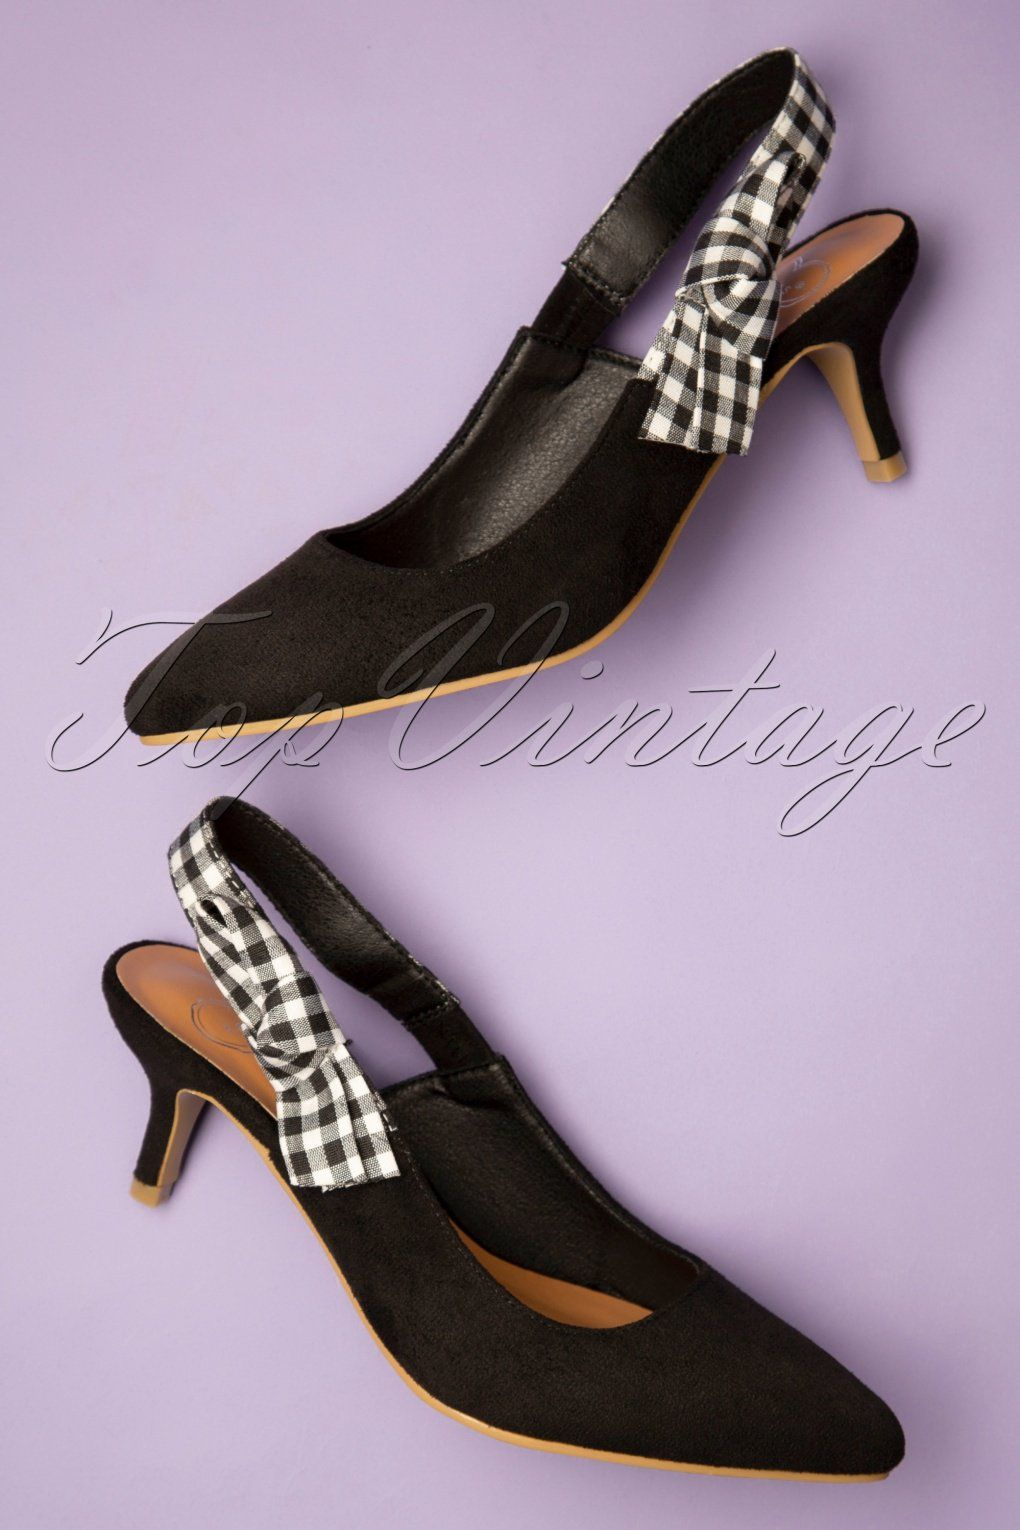 Vintage Style Shoes, Vintage Inspired Shoes in 2019 | Shoes